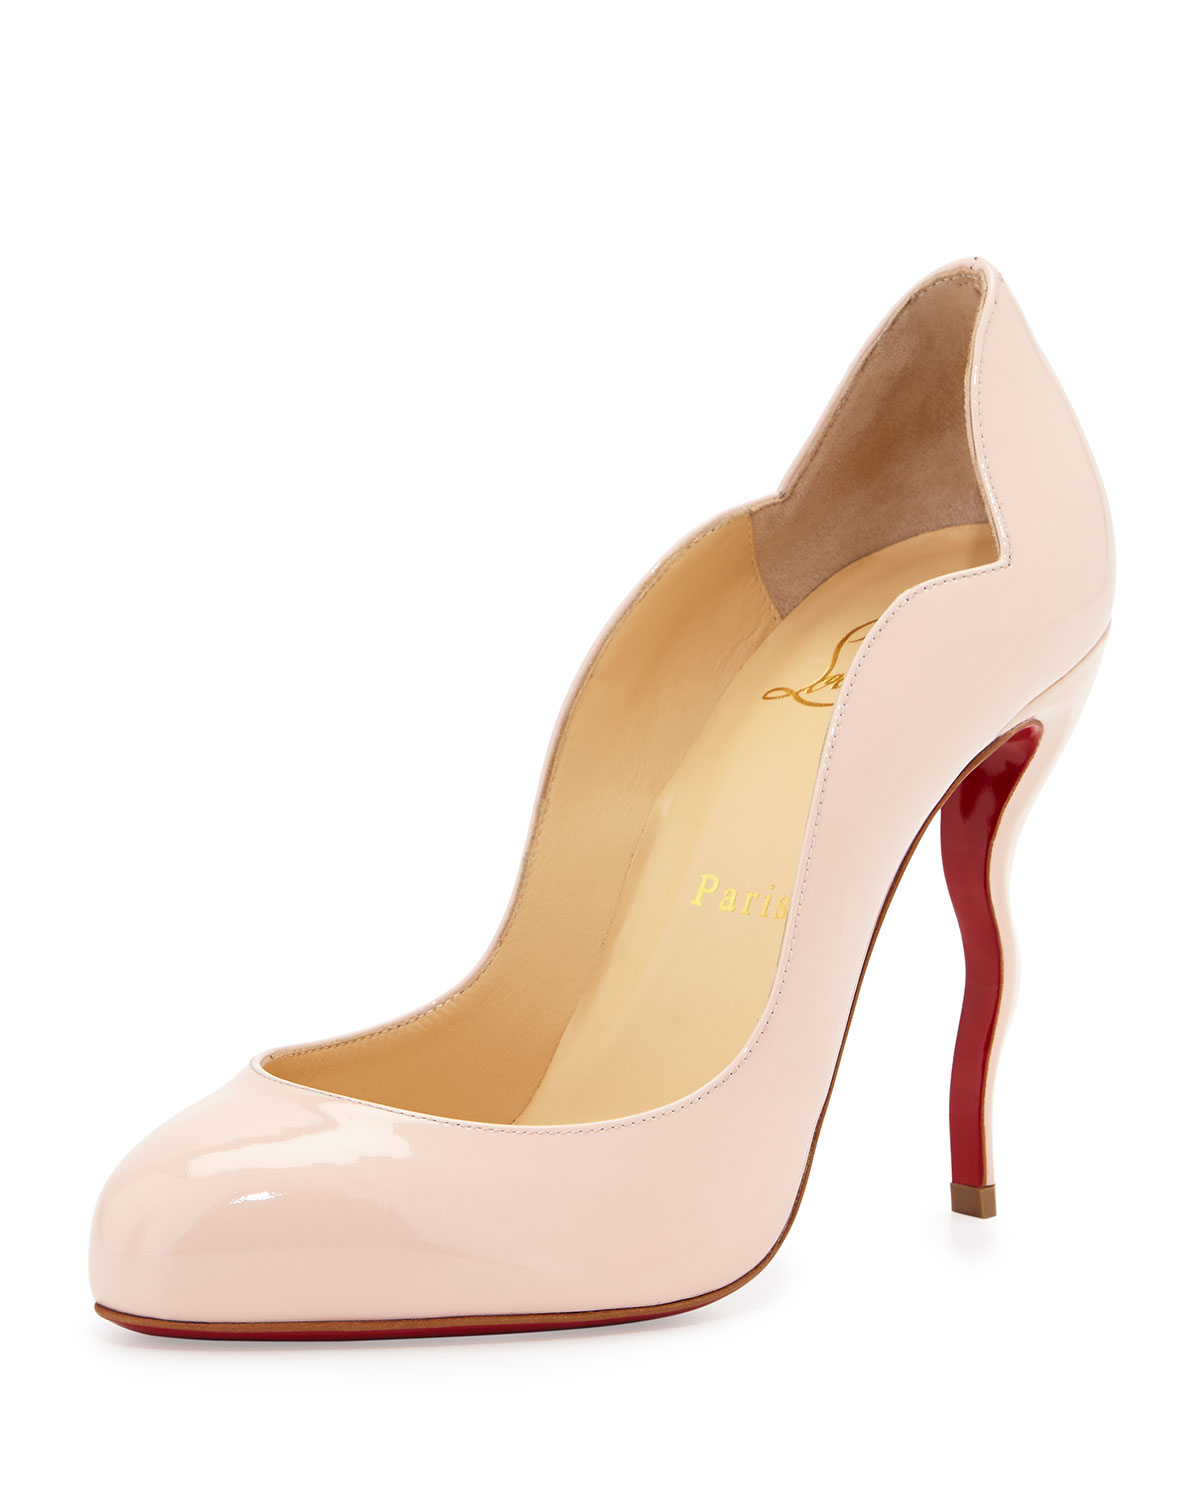 2b71574d98c5 Christian Louboutin Wawy Dolly Patent Squiggly-Heel Red Sole Pump ...